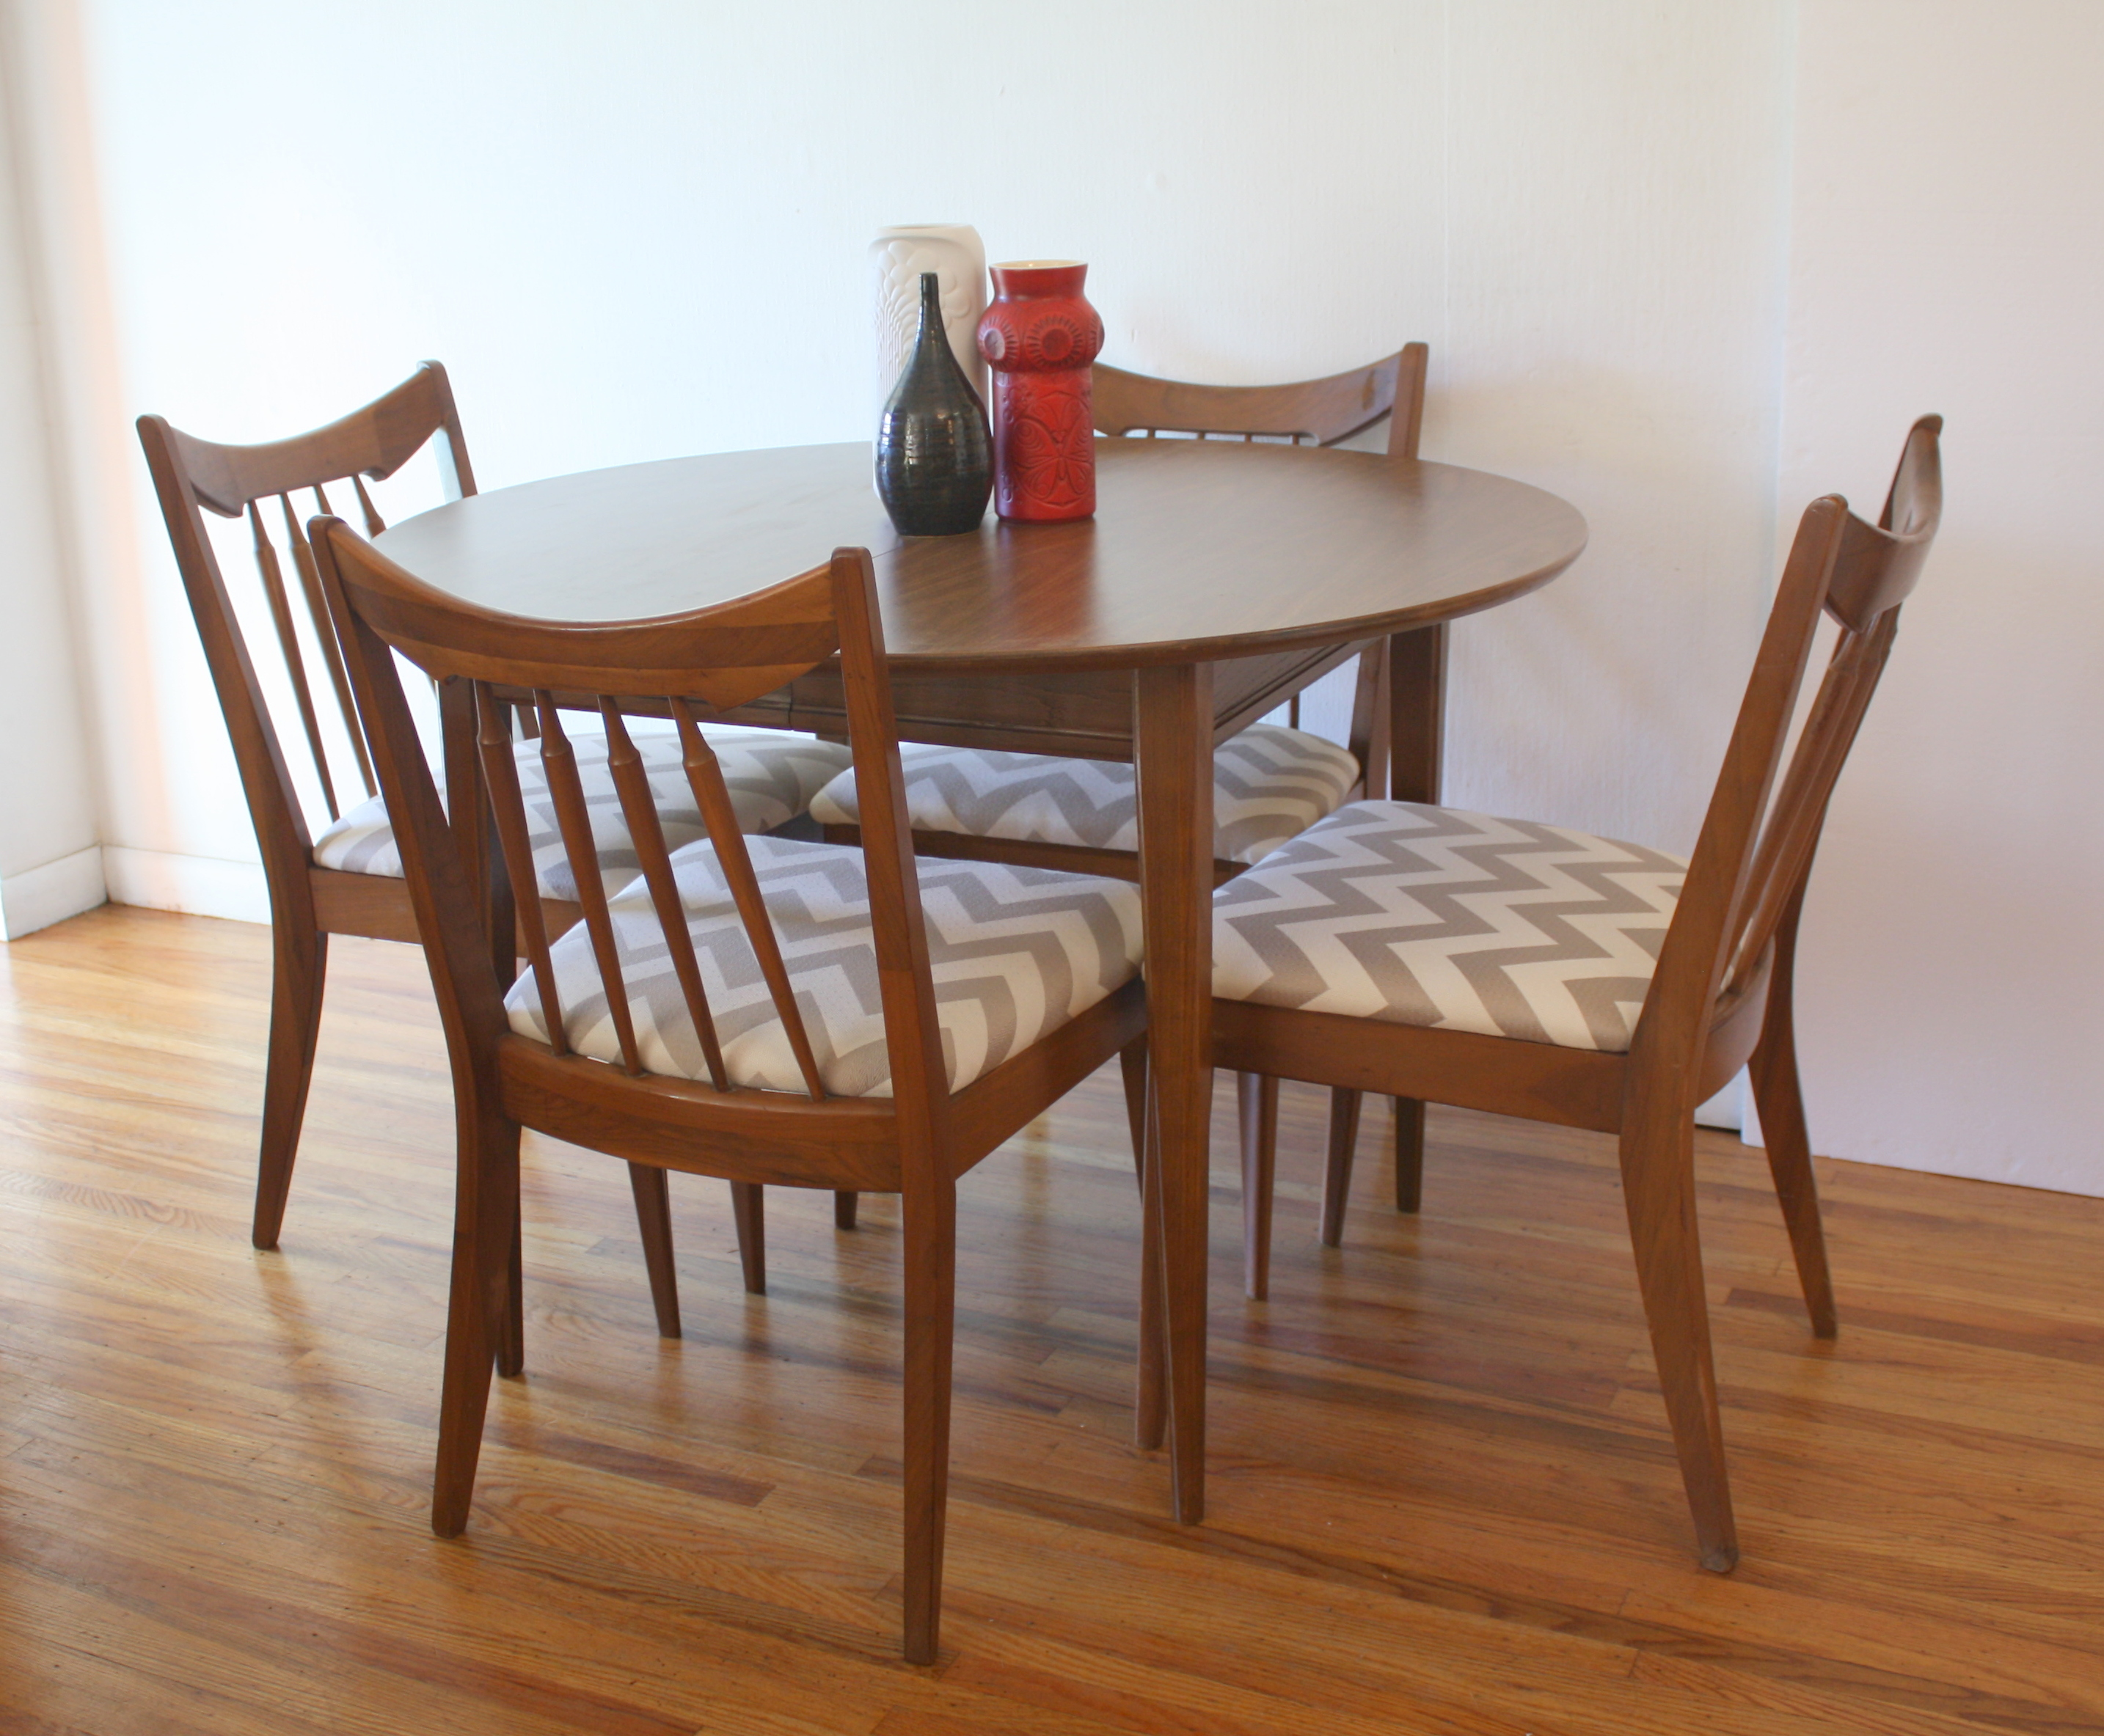 mcm round dining table and chairs 1.JPG